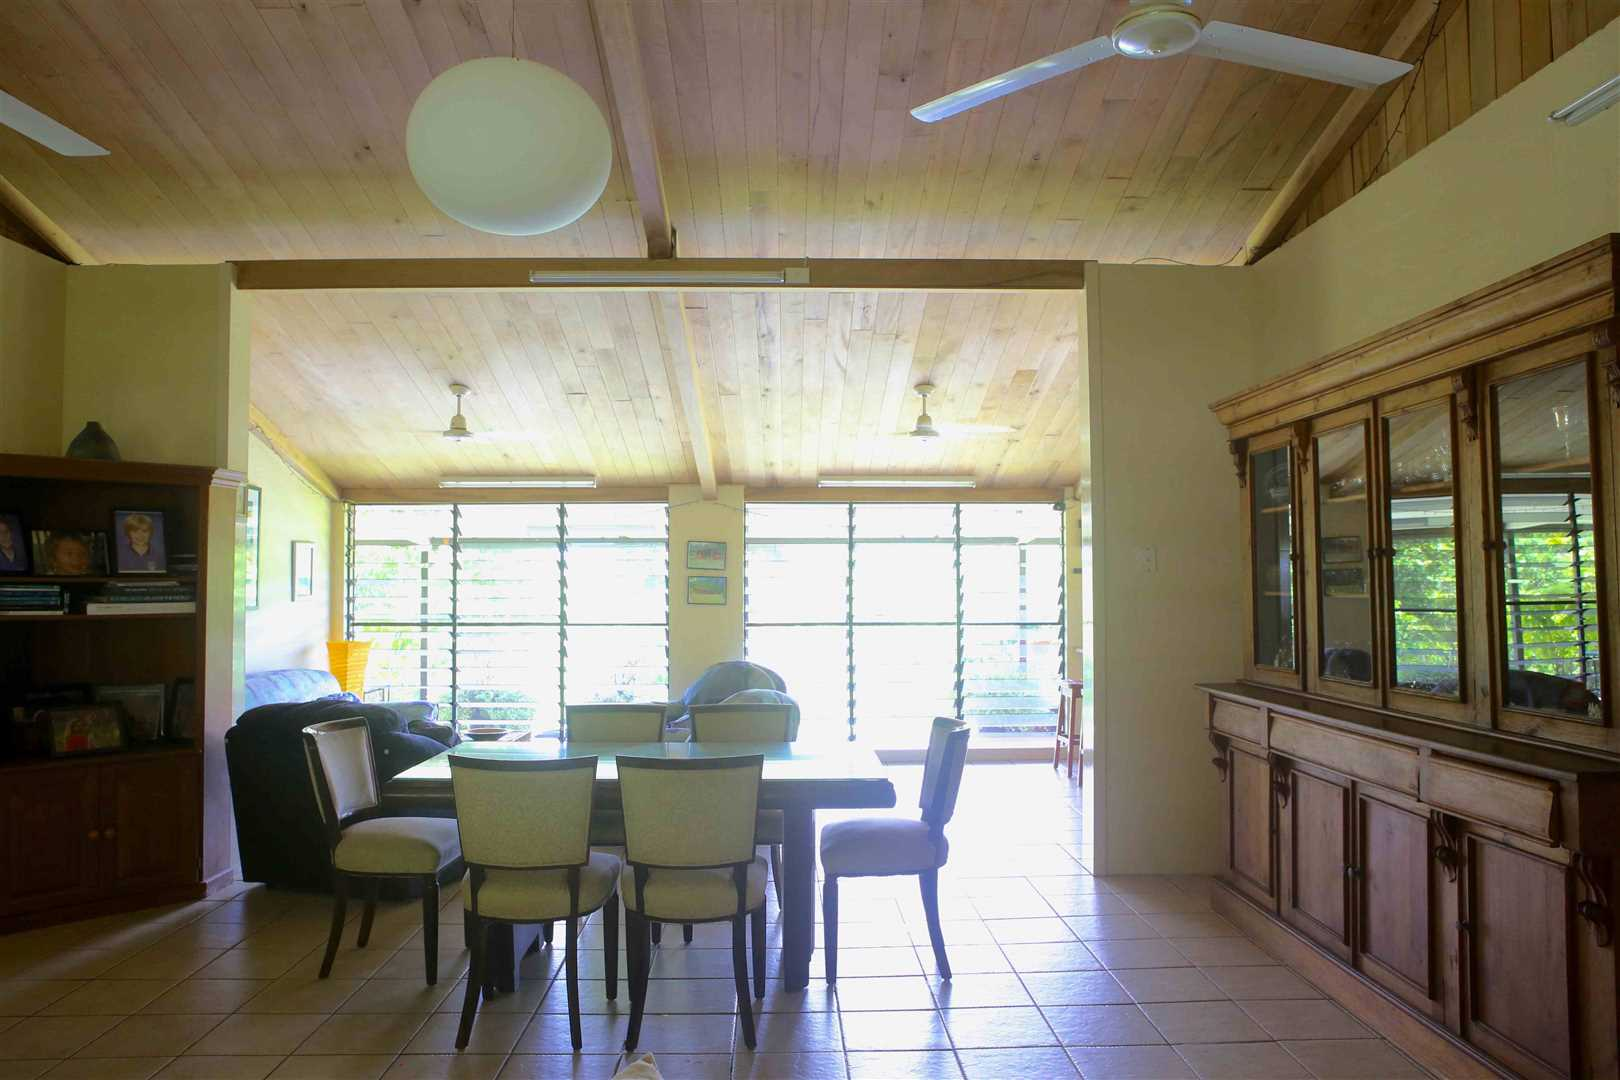 Inside view of part of home showing part of the open plan dining area